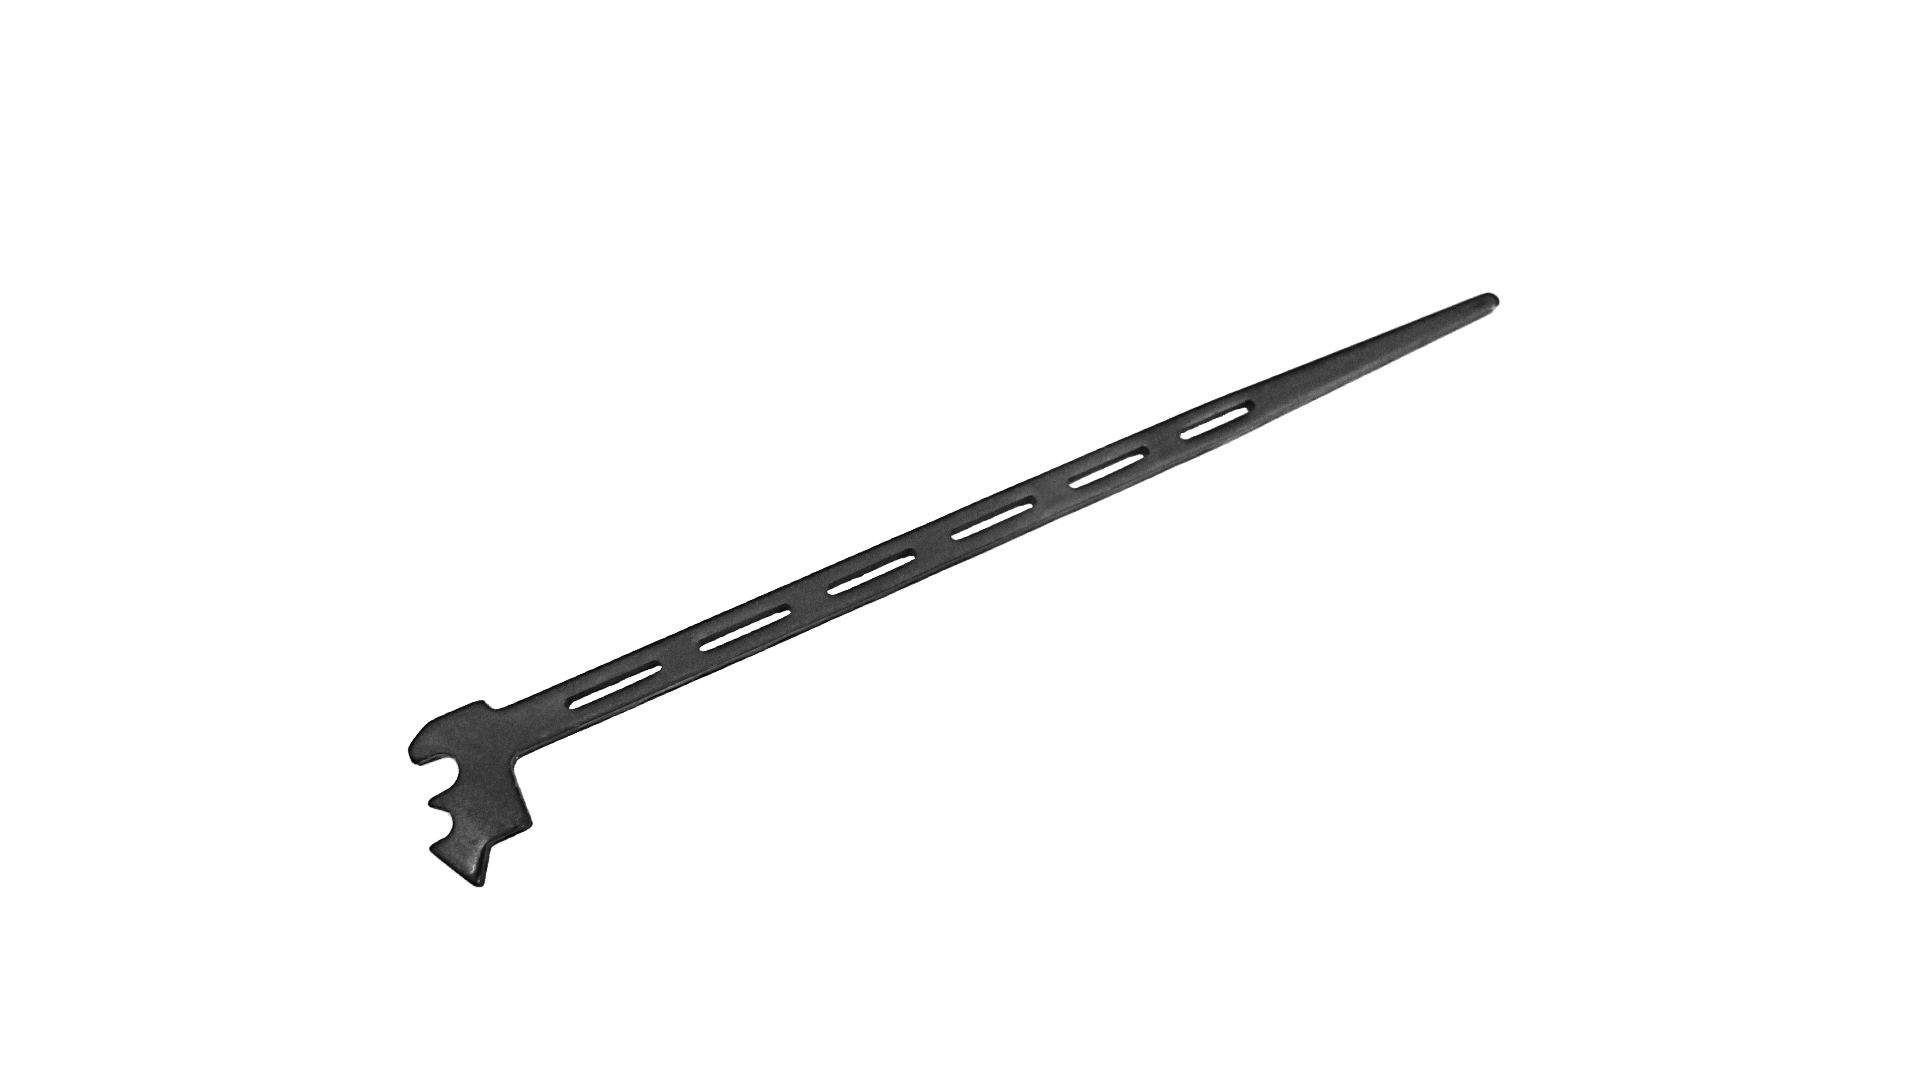 【ME-07】M1 CHARGING HANDLE ROD